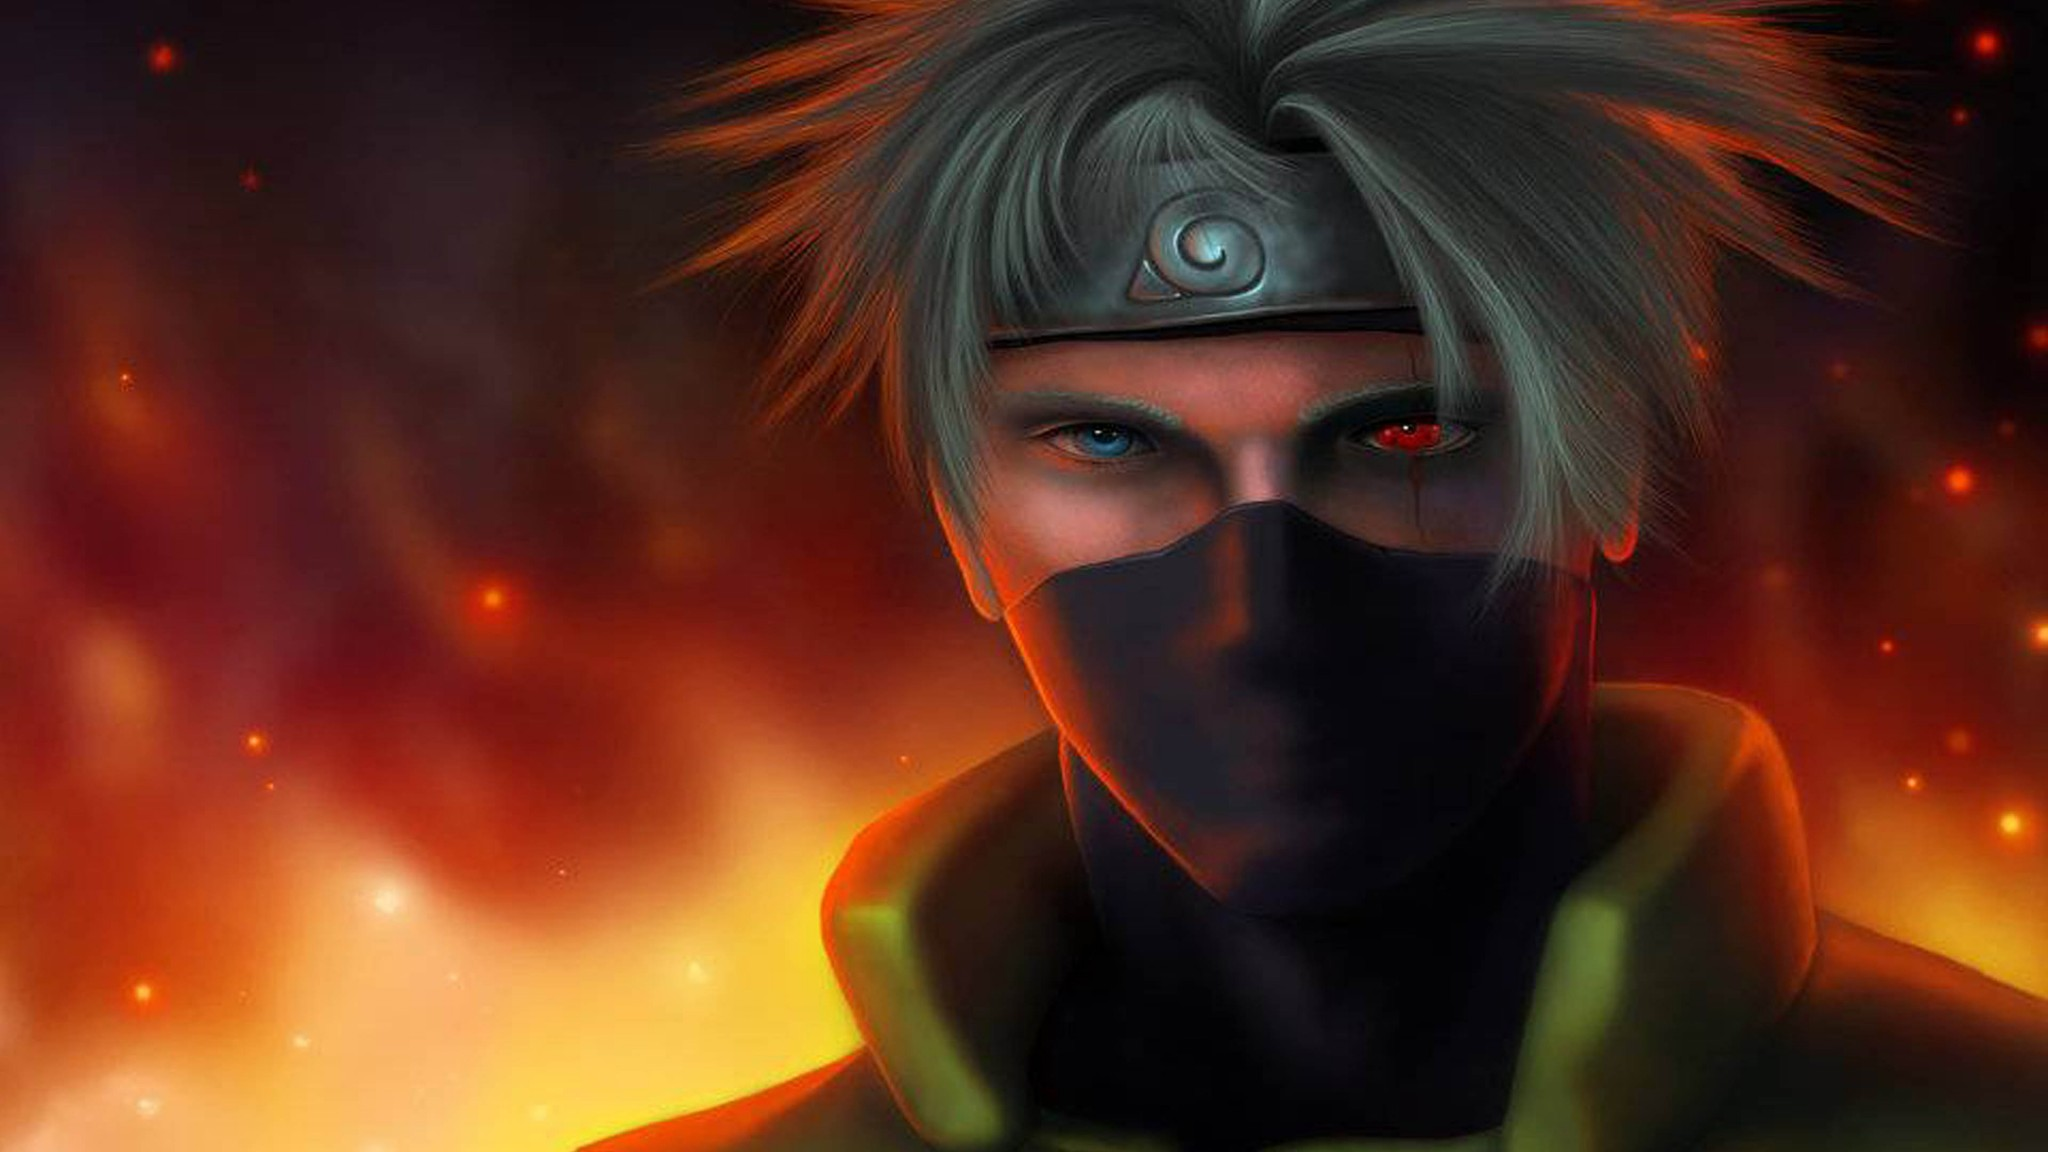 Hatake Kakashi Wallpapers High Quality Download Free